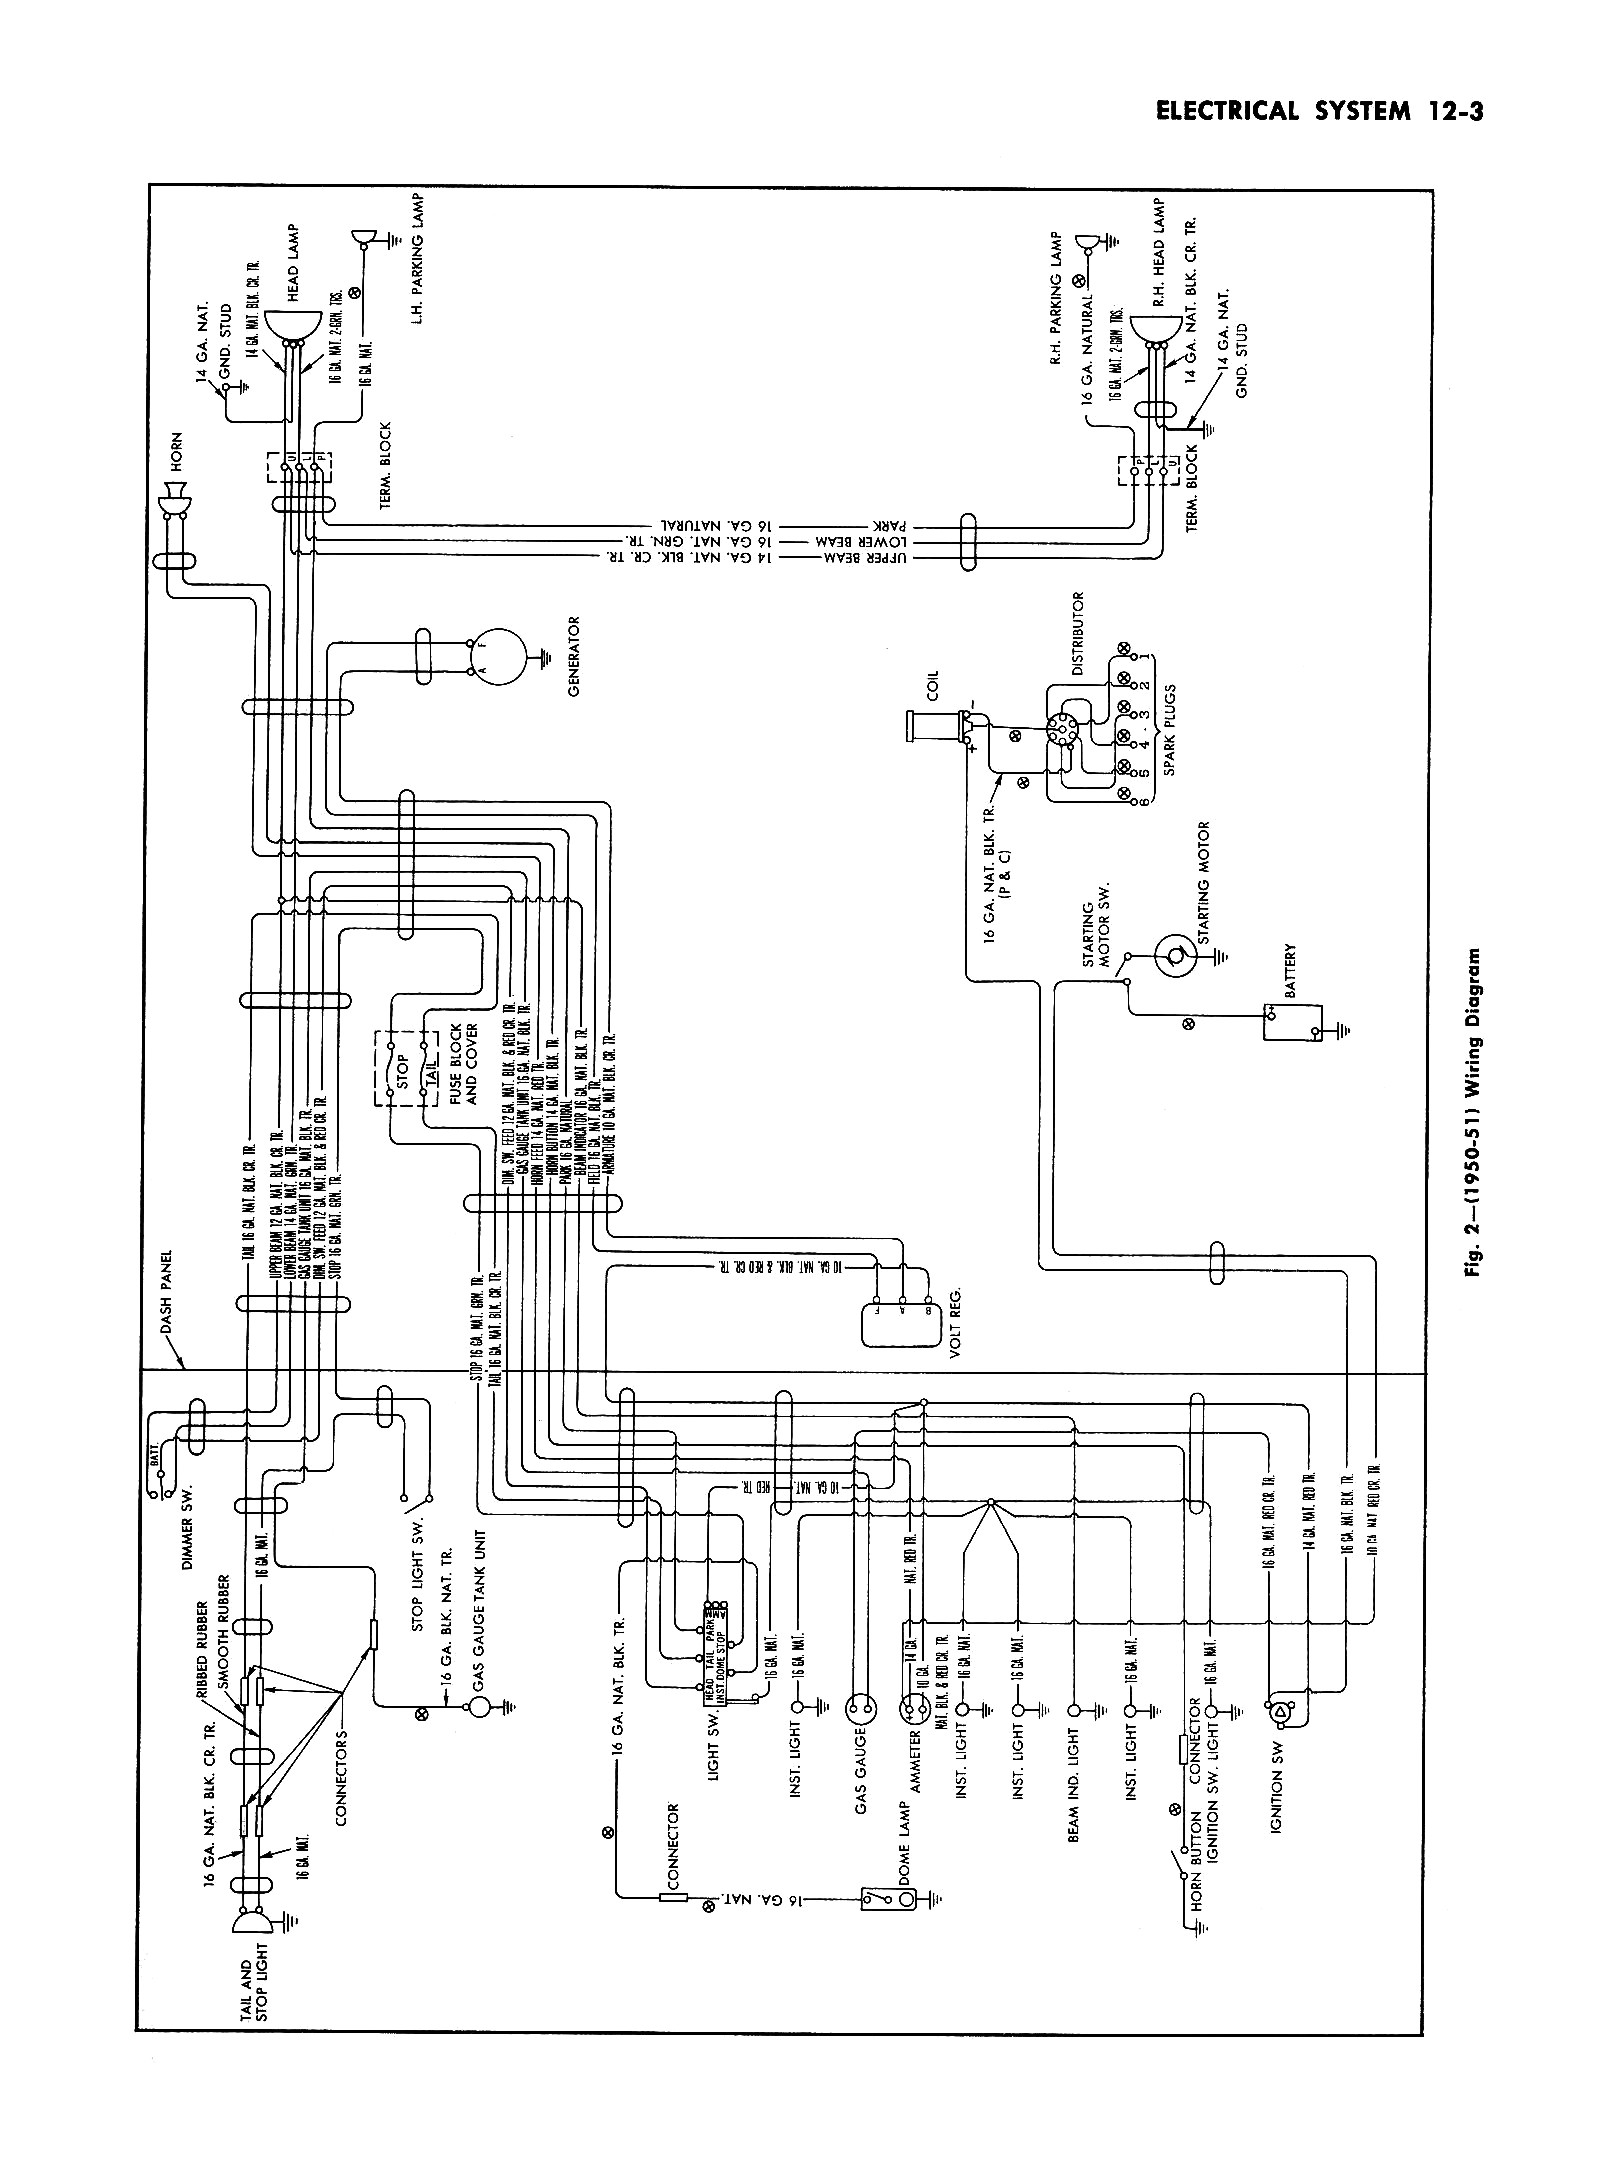 1984 Chevy Truck Headlight Wiring Diagram Full Hd Version Wiring Diagram Causal Loop Diagram Dieseldenimfactory Fr